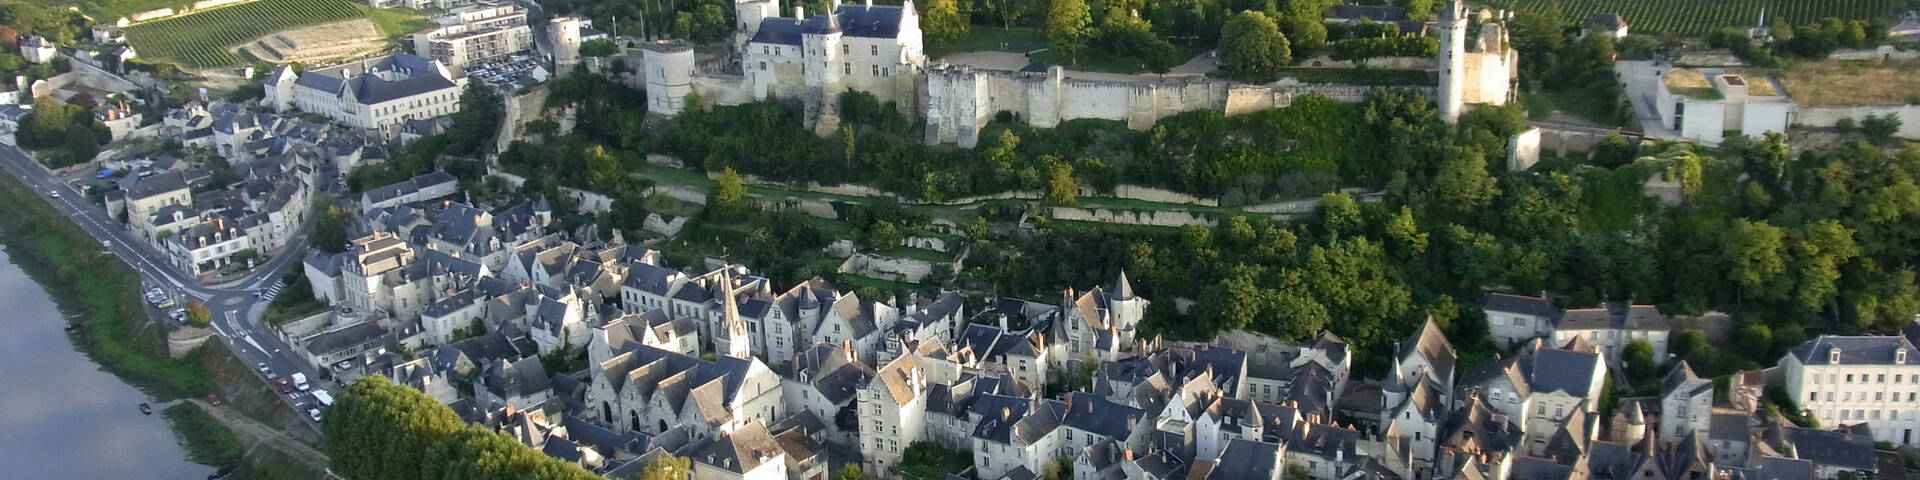 City of Chinon